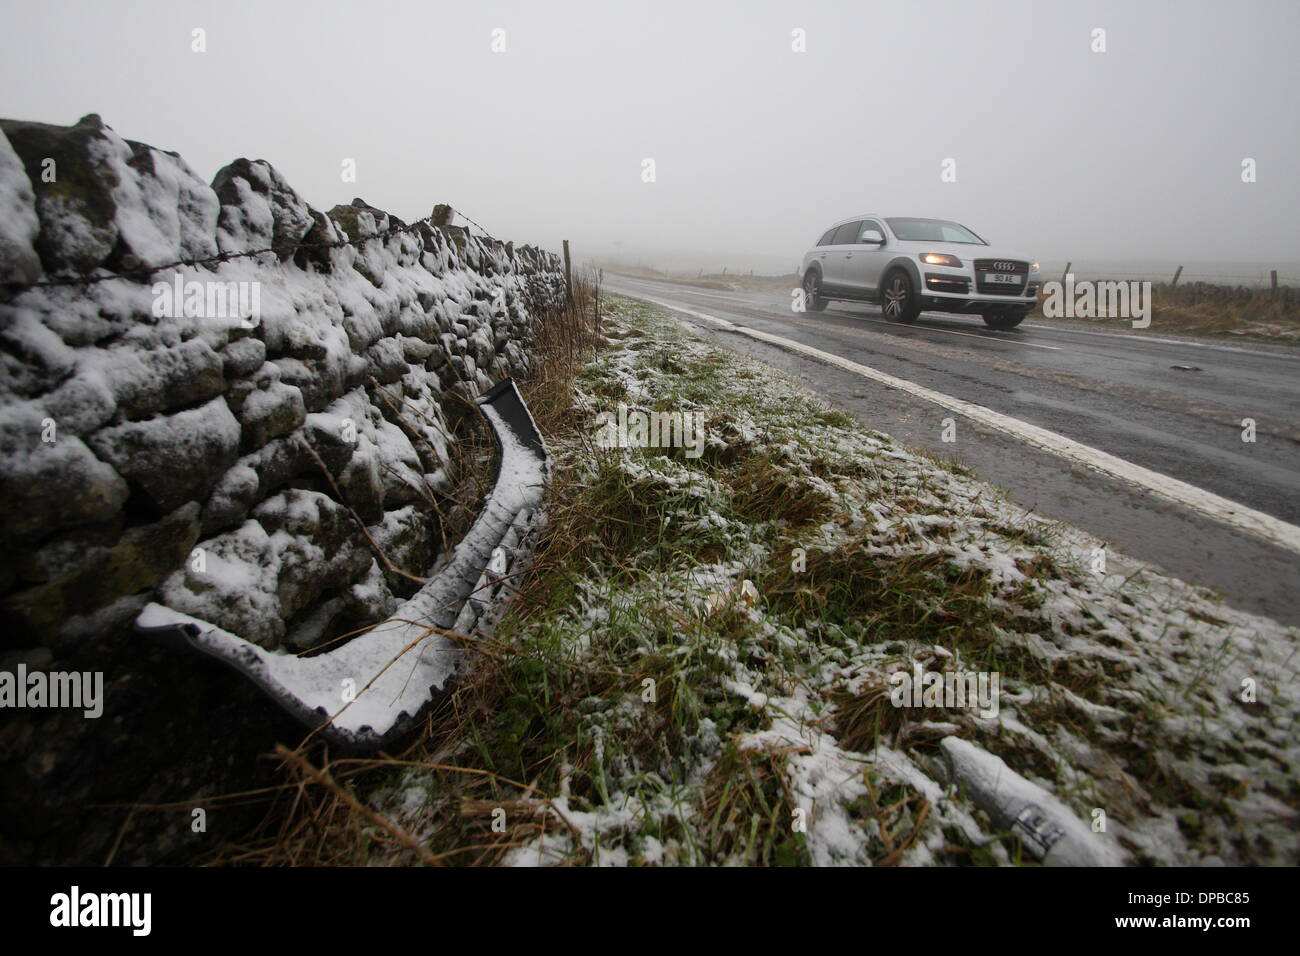 Peak District, Derbyshire, UK. 11th January 2014. 11 Jan 2014  a car bumper lies by the side of the road as fog and snow sweep over the A6187 near Castleton making for tricky driving conditions after overnight snowfall hit stretches of high ground iin Derbyshire's Peak District. Credit:  Matthew Taylor/Alamy Live News - Stock Image